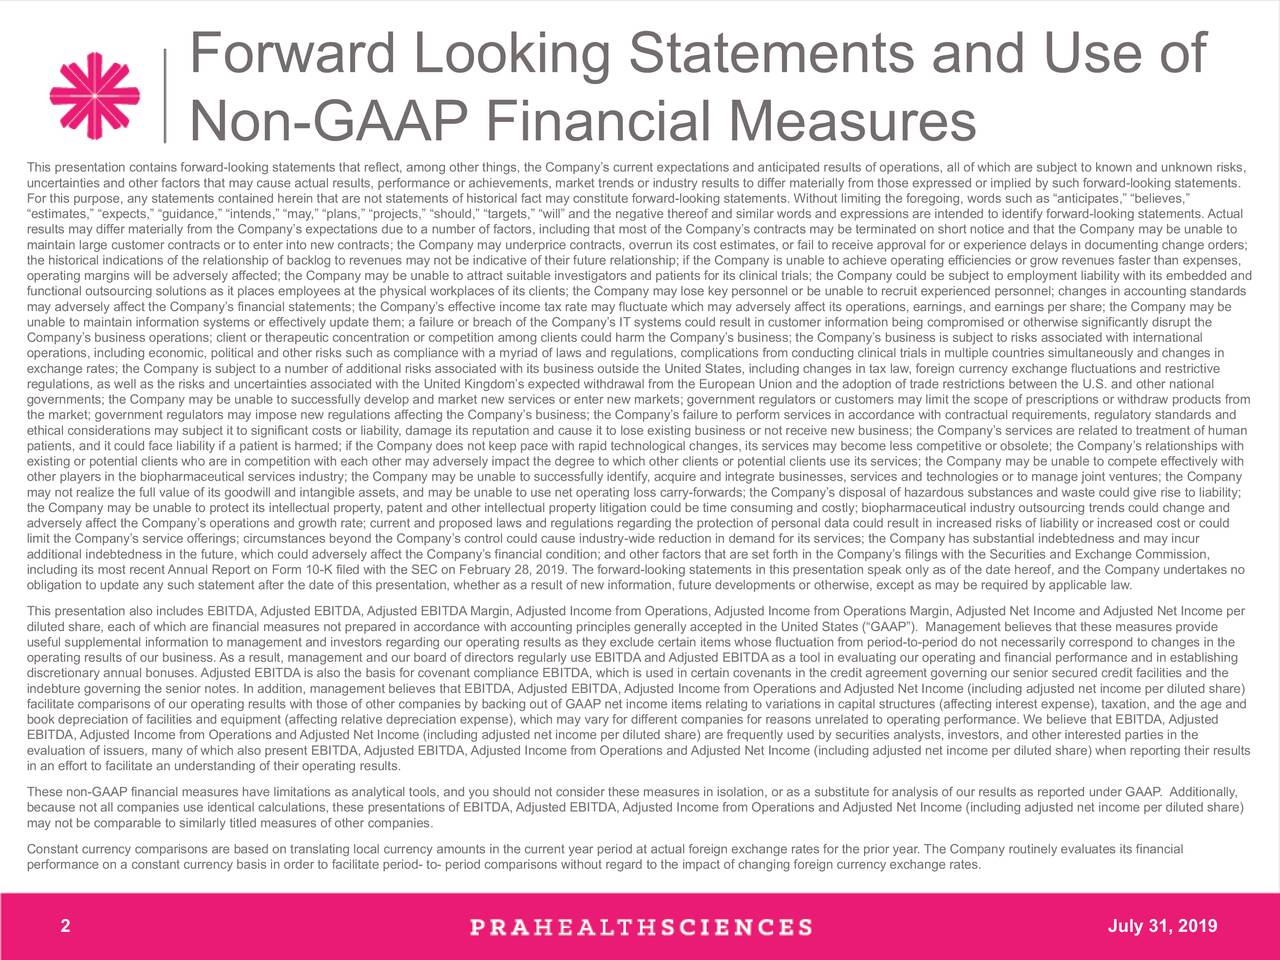 Forward Looking Statements and Use of